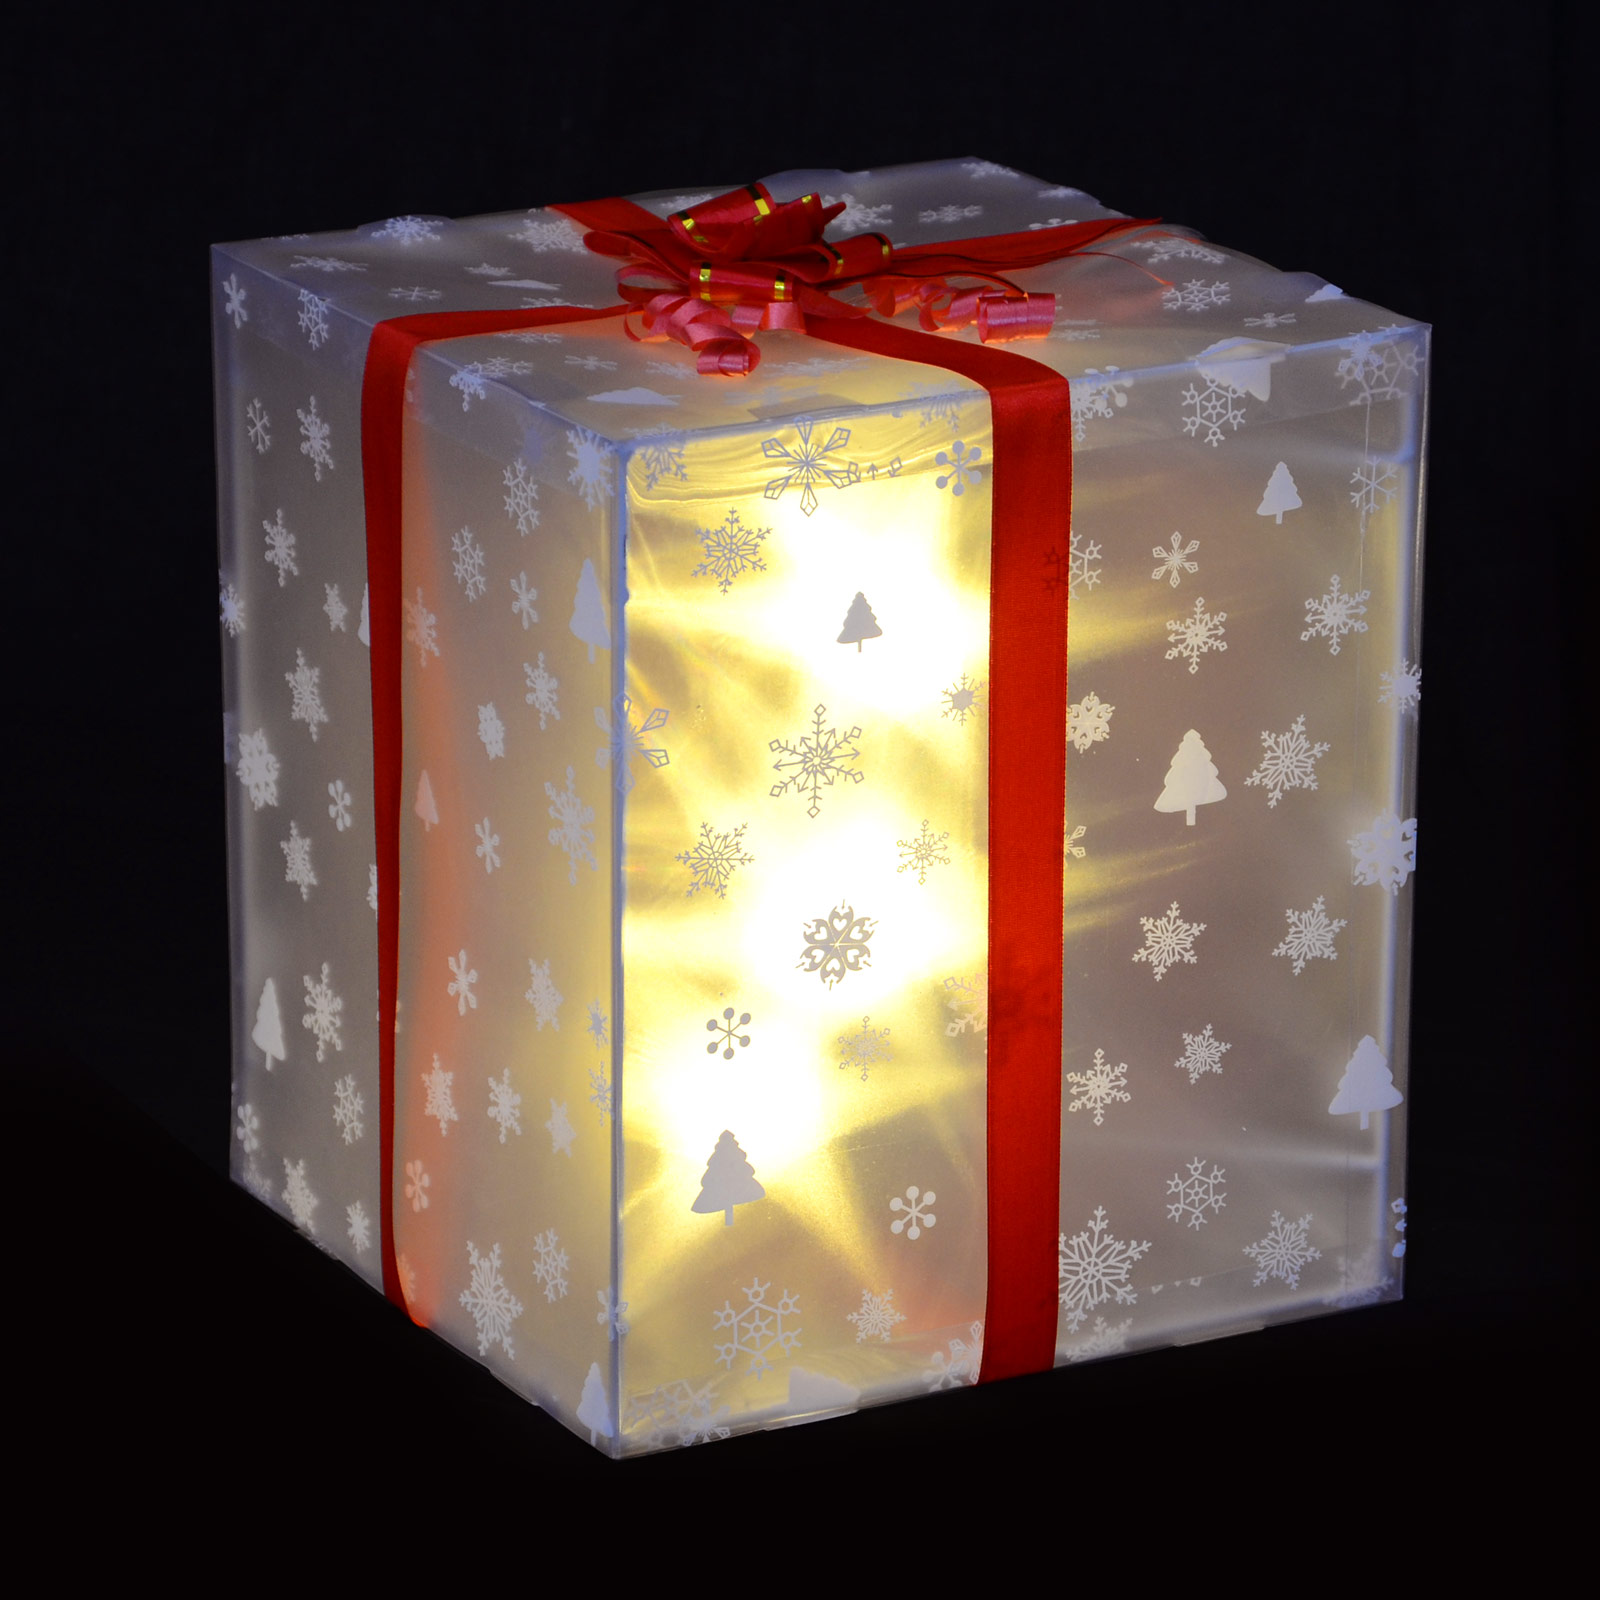 Lighted christmas gift boxes yard decor - Home Light Up Decoration Christmas Gift Boxes Christmas Decorations Pre Lit Gift Boxes For Outdoor Christmas Christmas Lights Christmas Trees Led